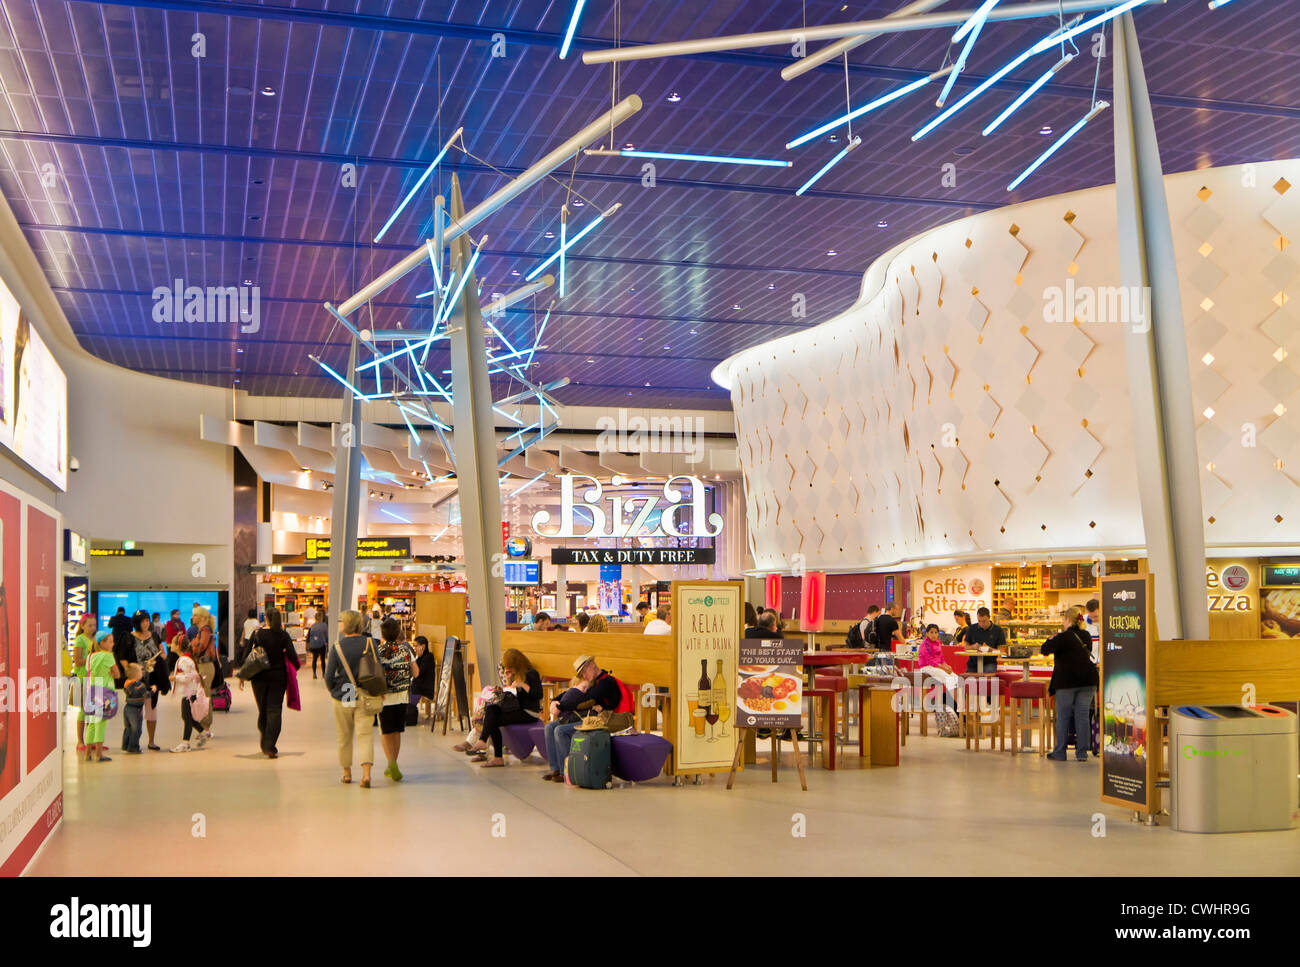 Duty free shops at the departures lounge area of Manchester International Airport  England UK GB EU Europe - Stock Image